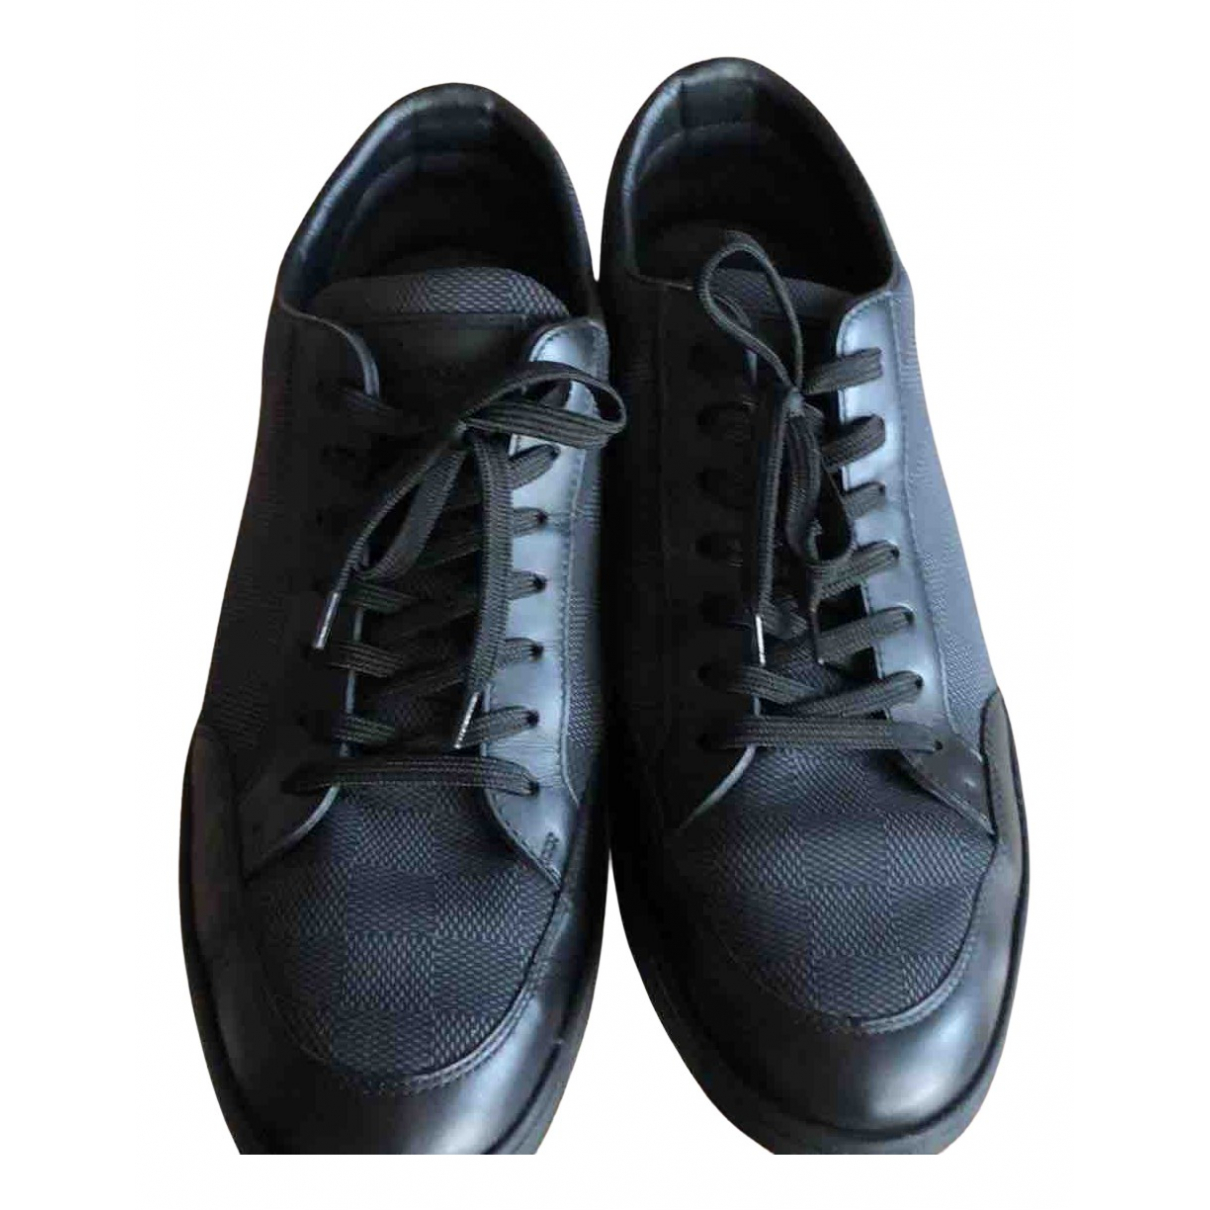 Louis Vuitton N Black Cloth Trainers for Men 41 EU